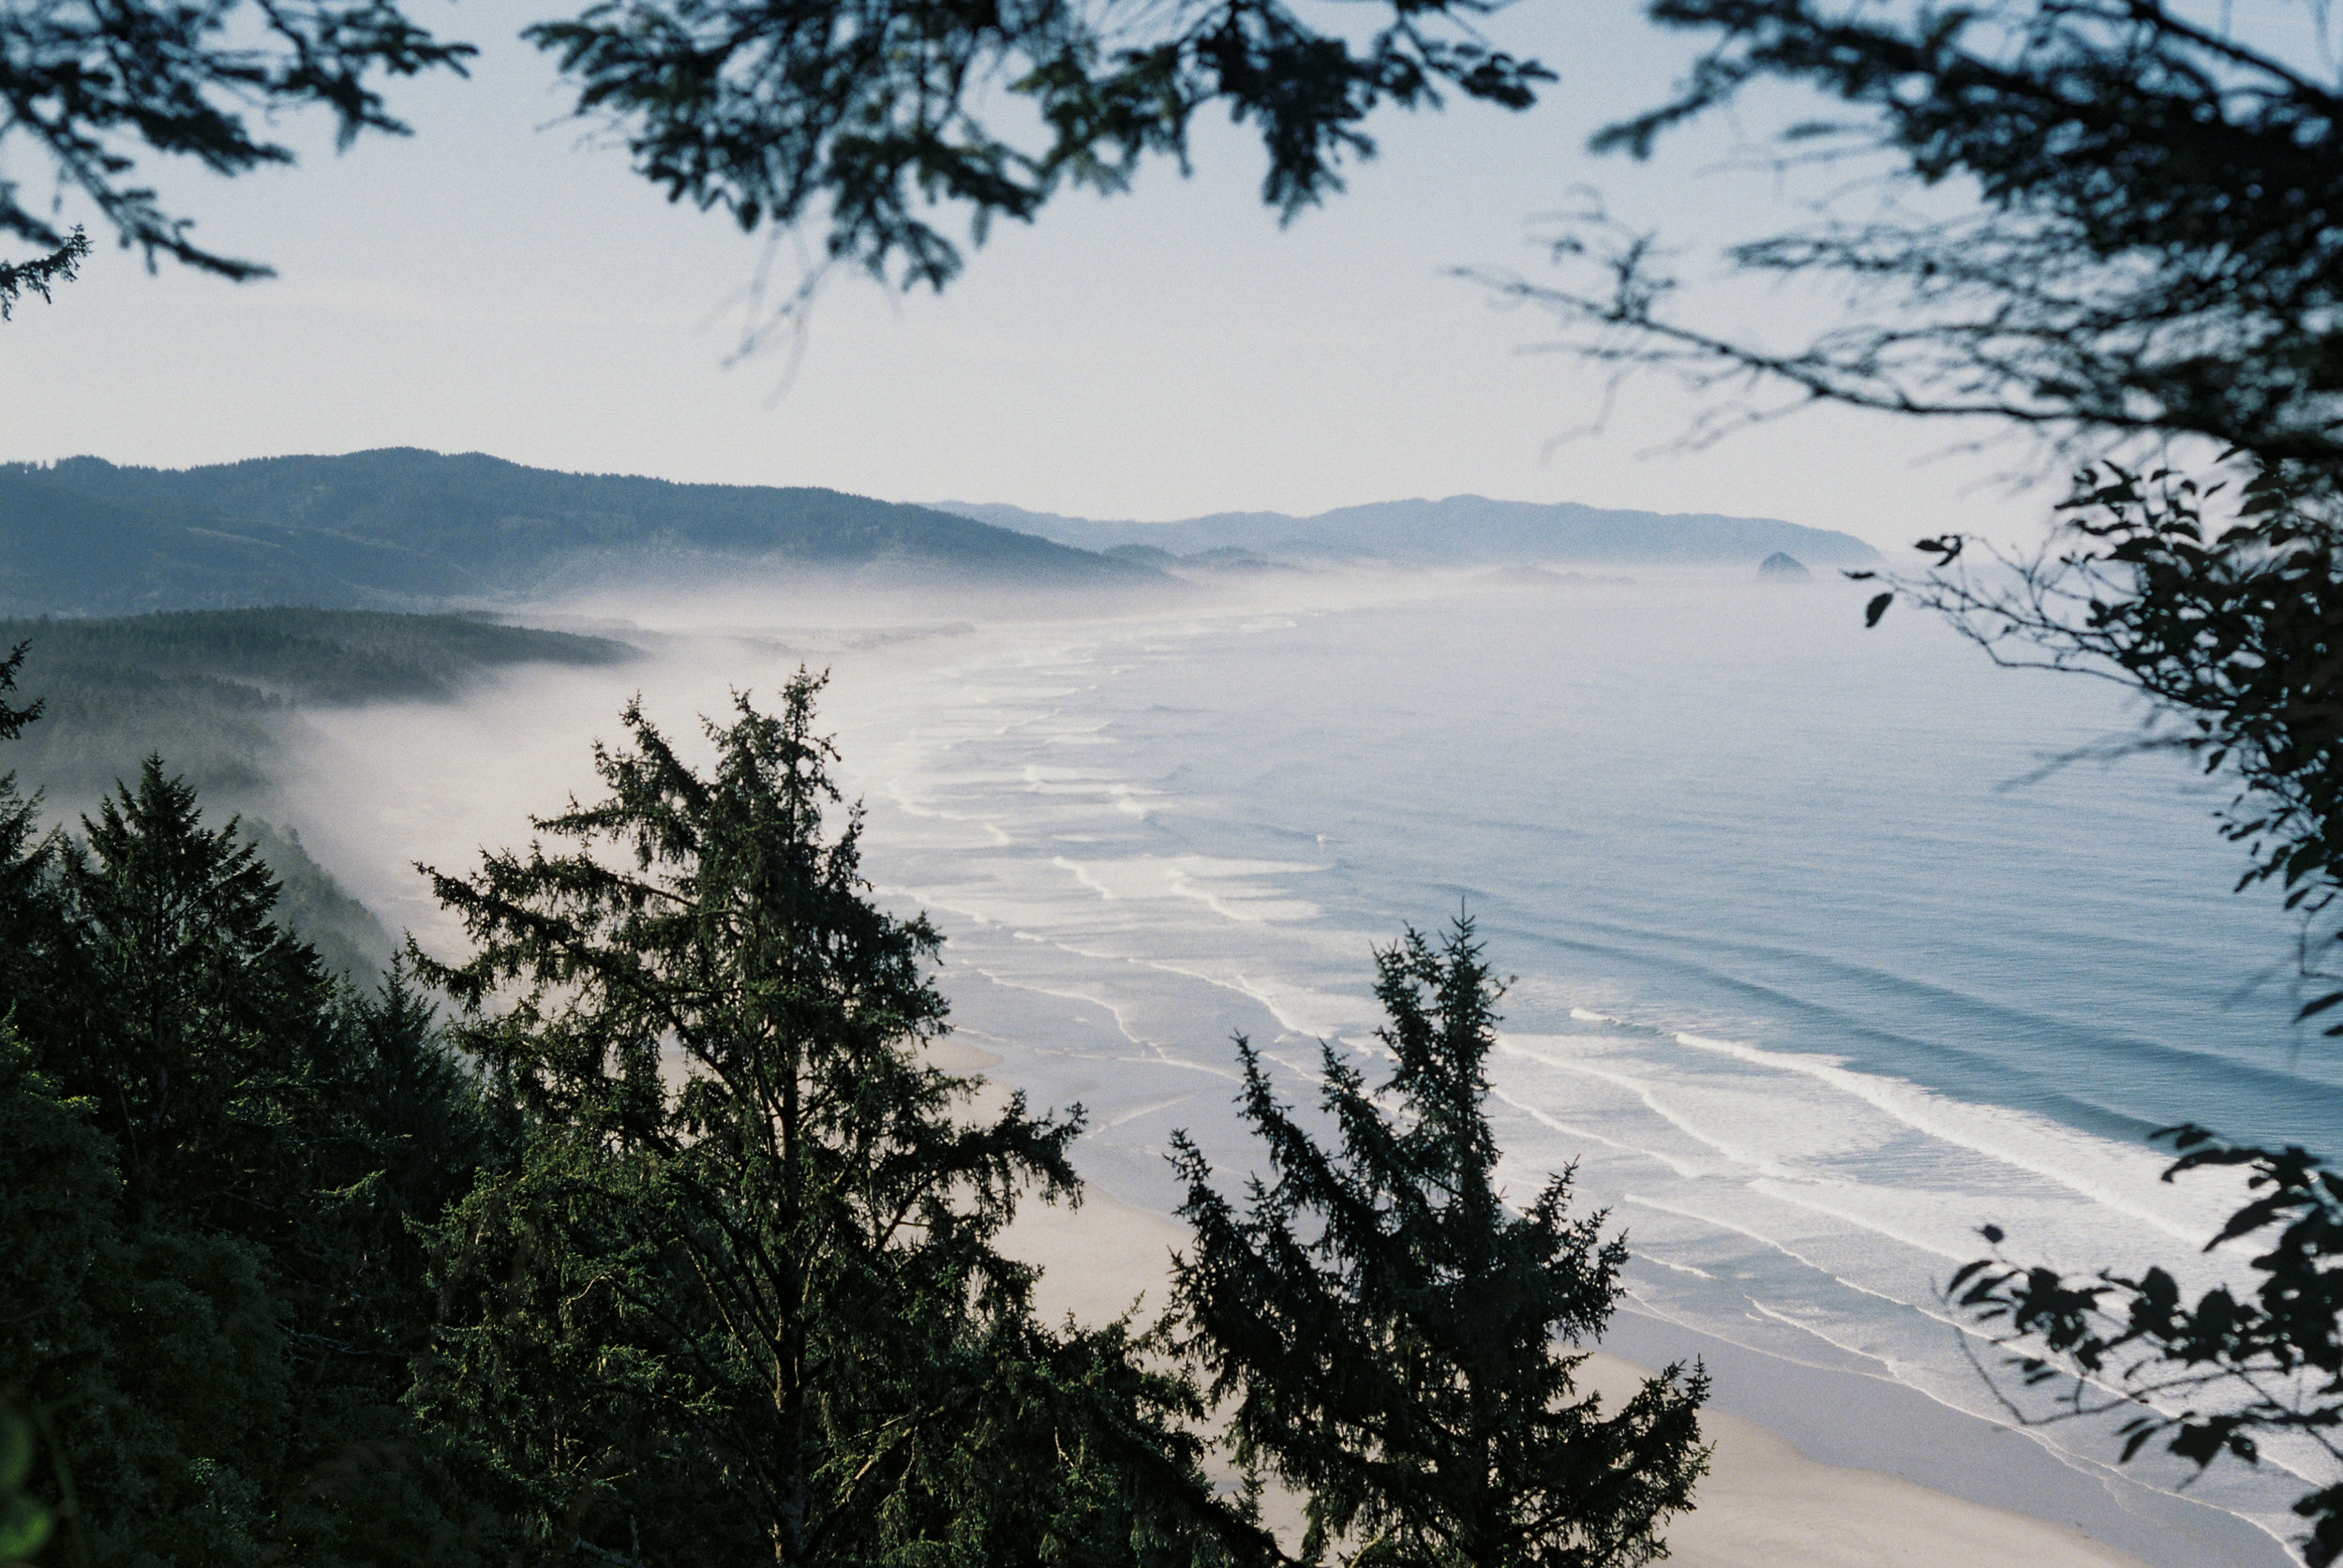 Overlooking the Pacific Ocean along a section of the Oregon Coast Trail in Cape Lookout, OR